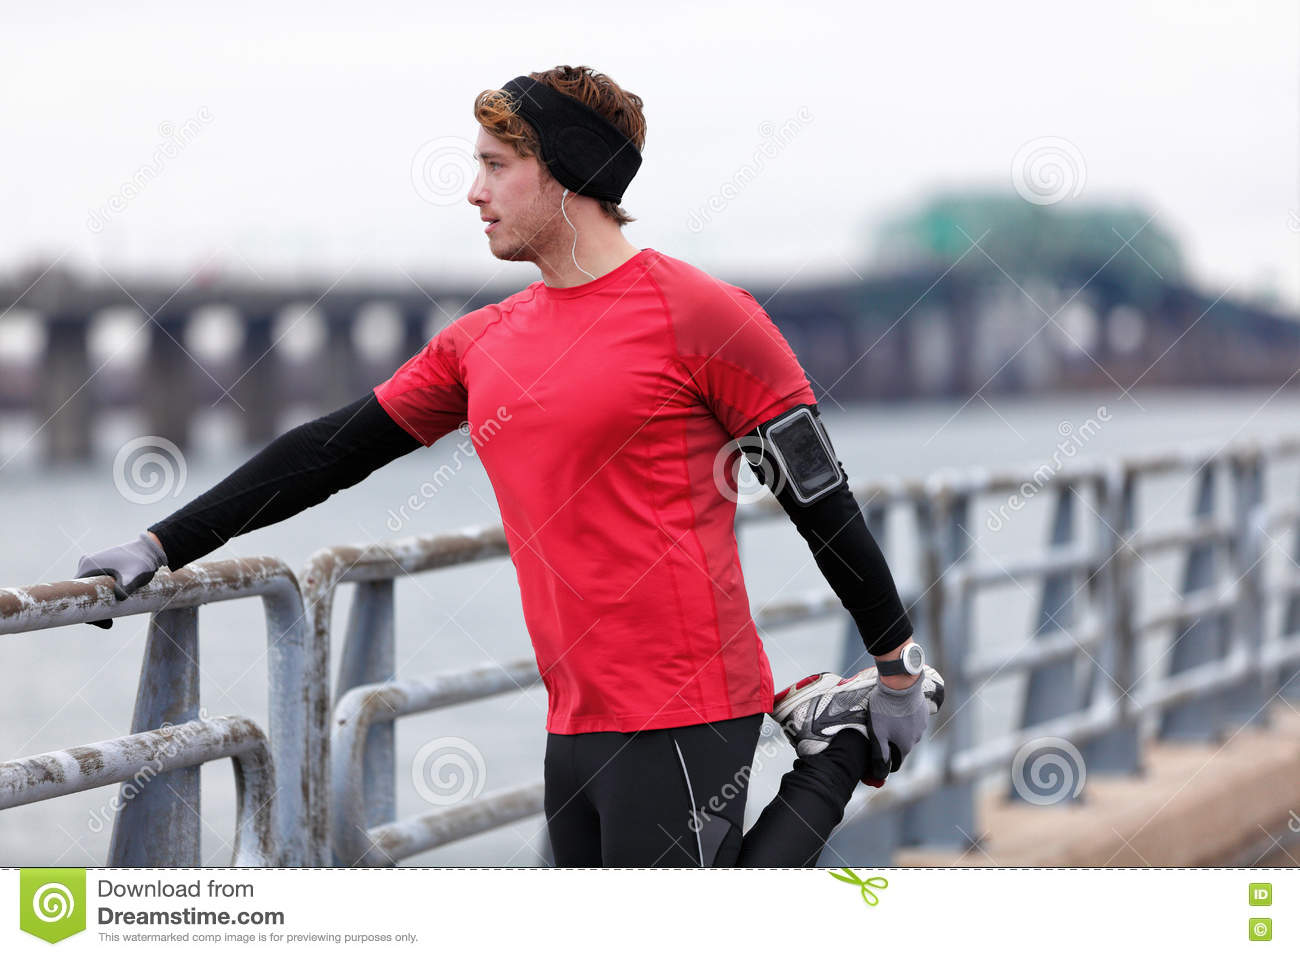 Male runner training in cold winter doing warm-up